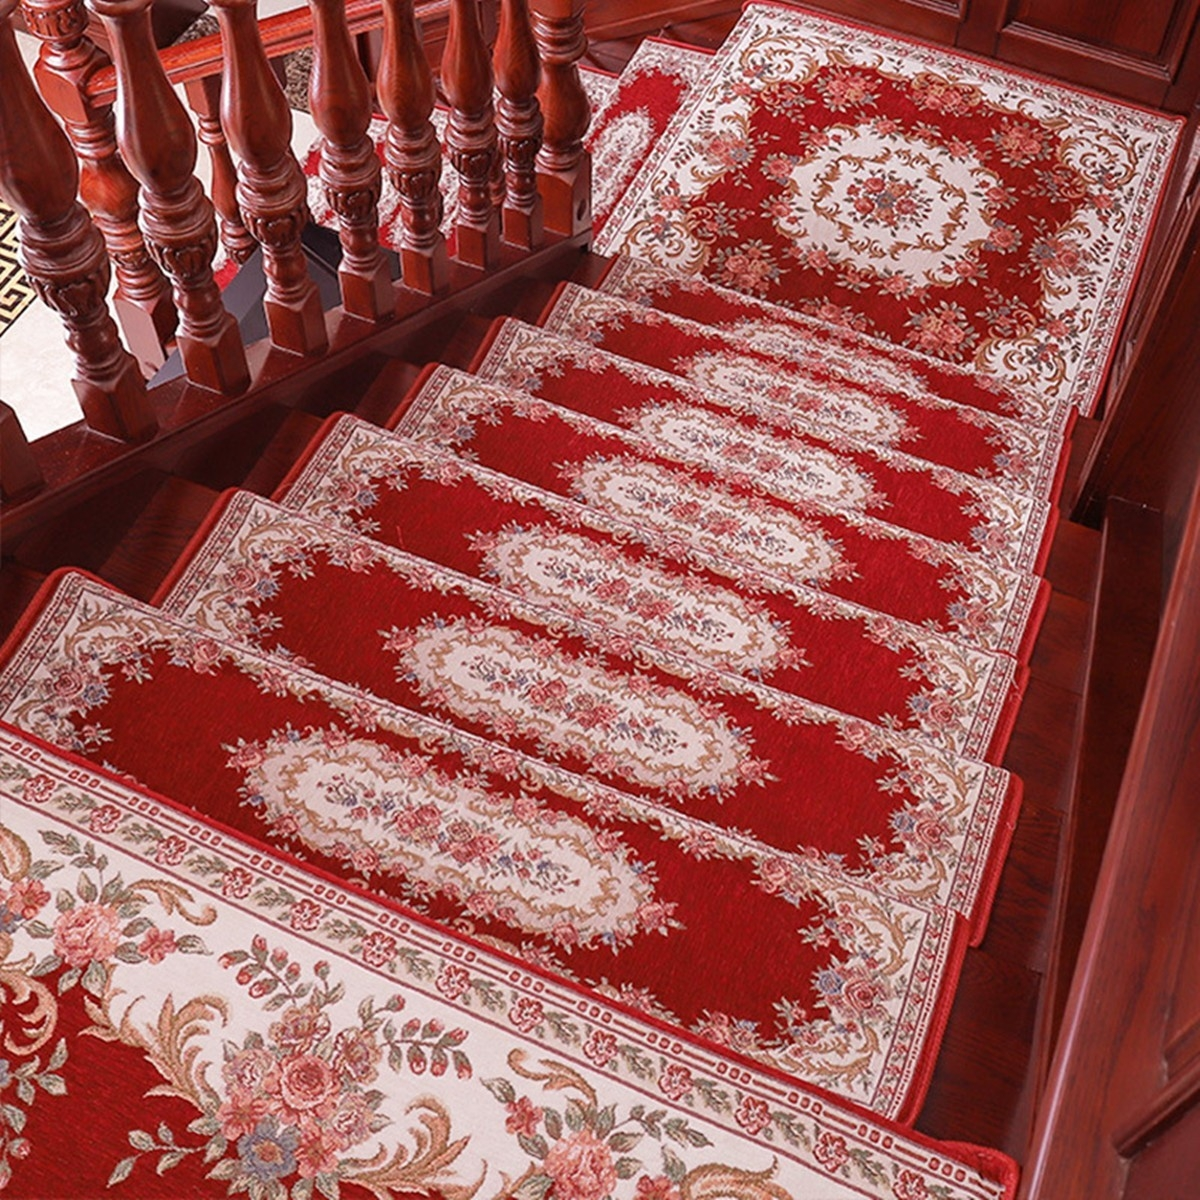 Elegant Floral Self Adhesive Stairs Carpet Non Slip Rug Stair   Carpet Stair Treads Only   Wood   Hardwood   Stair Runner   Non Slip   Hardwood Floors